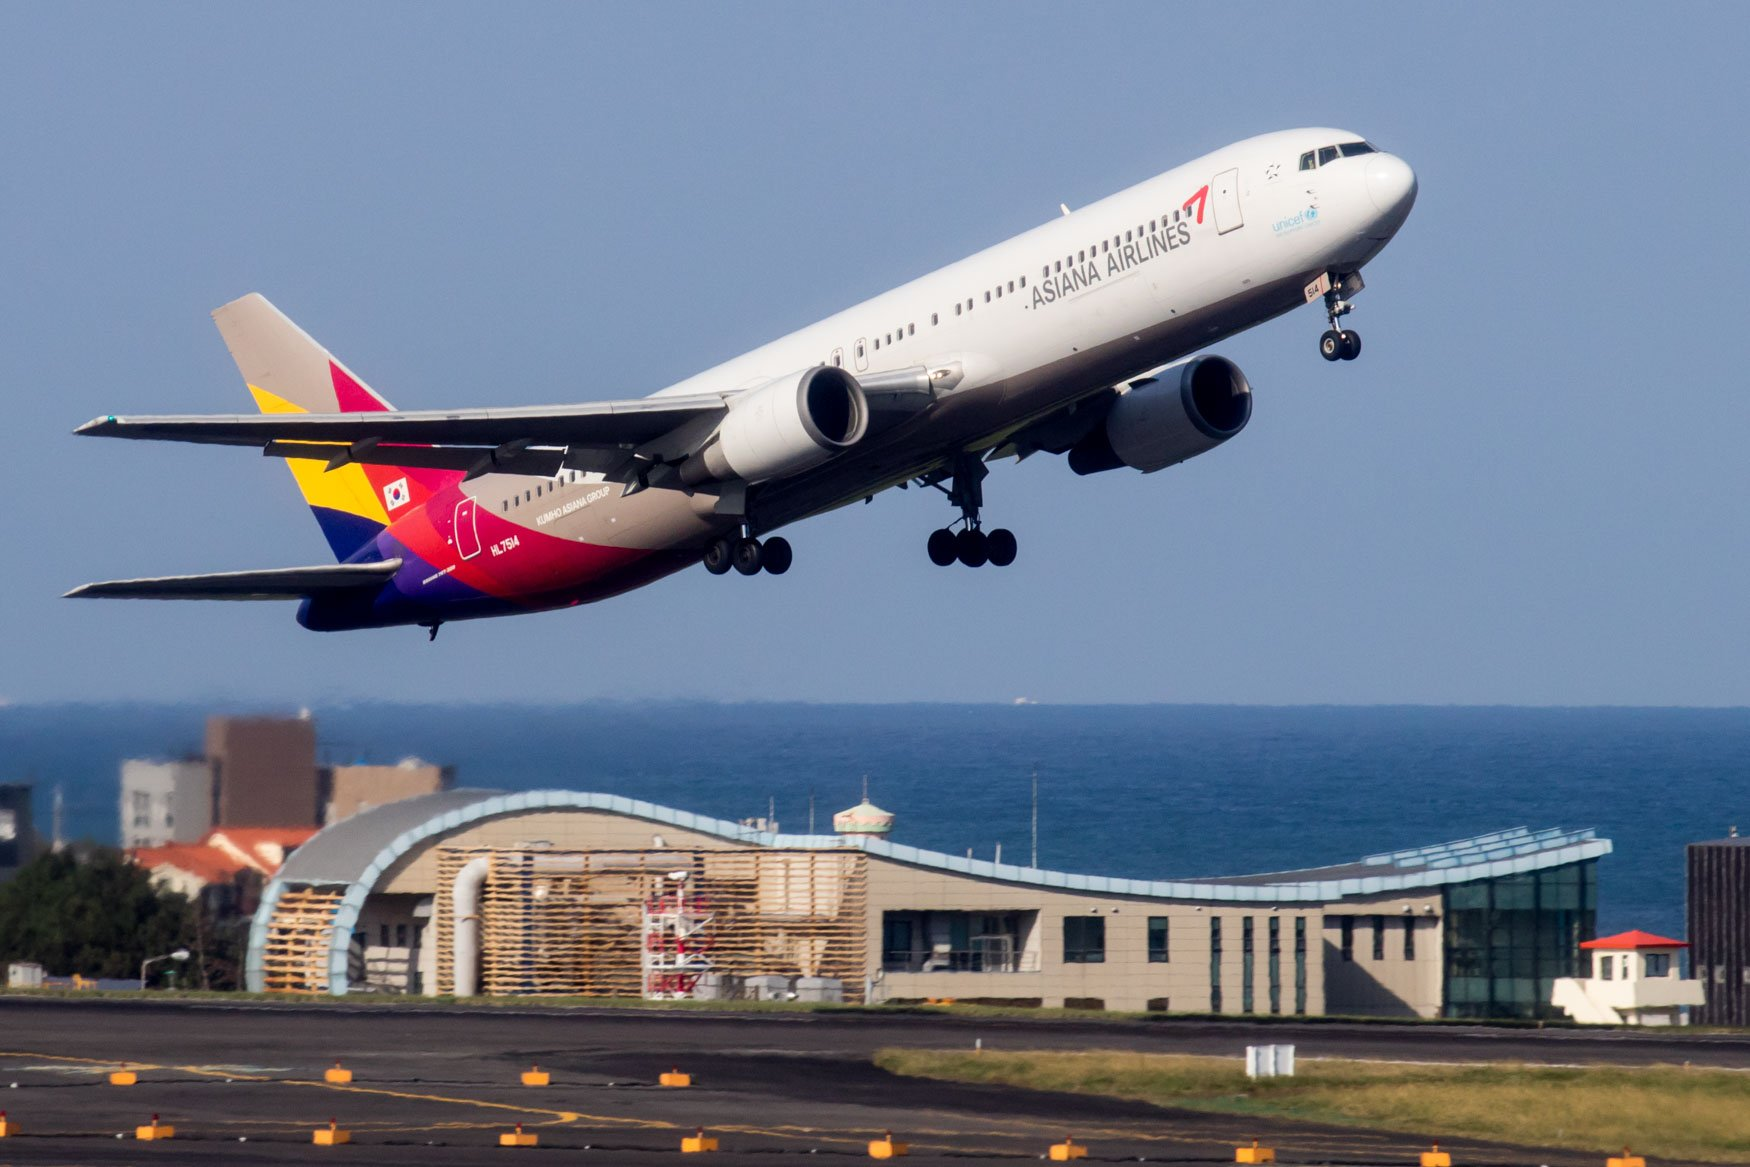 Asiana Airlines Boeing 767-300